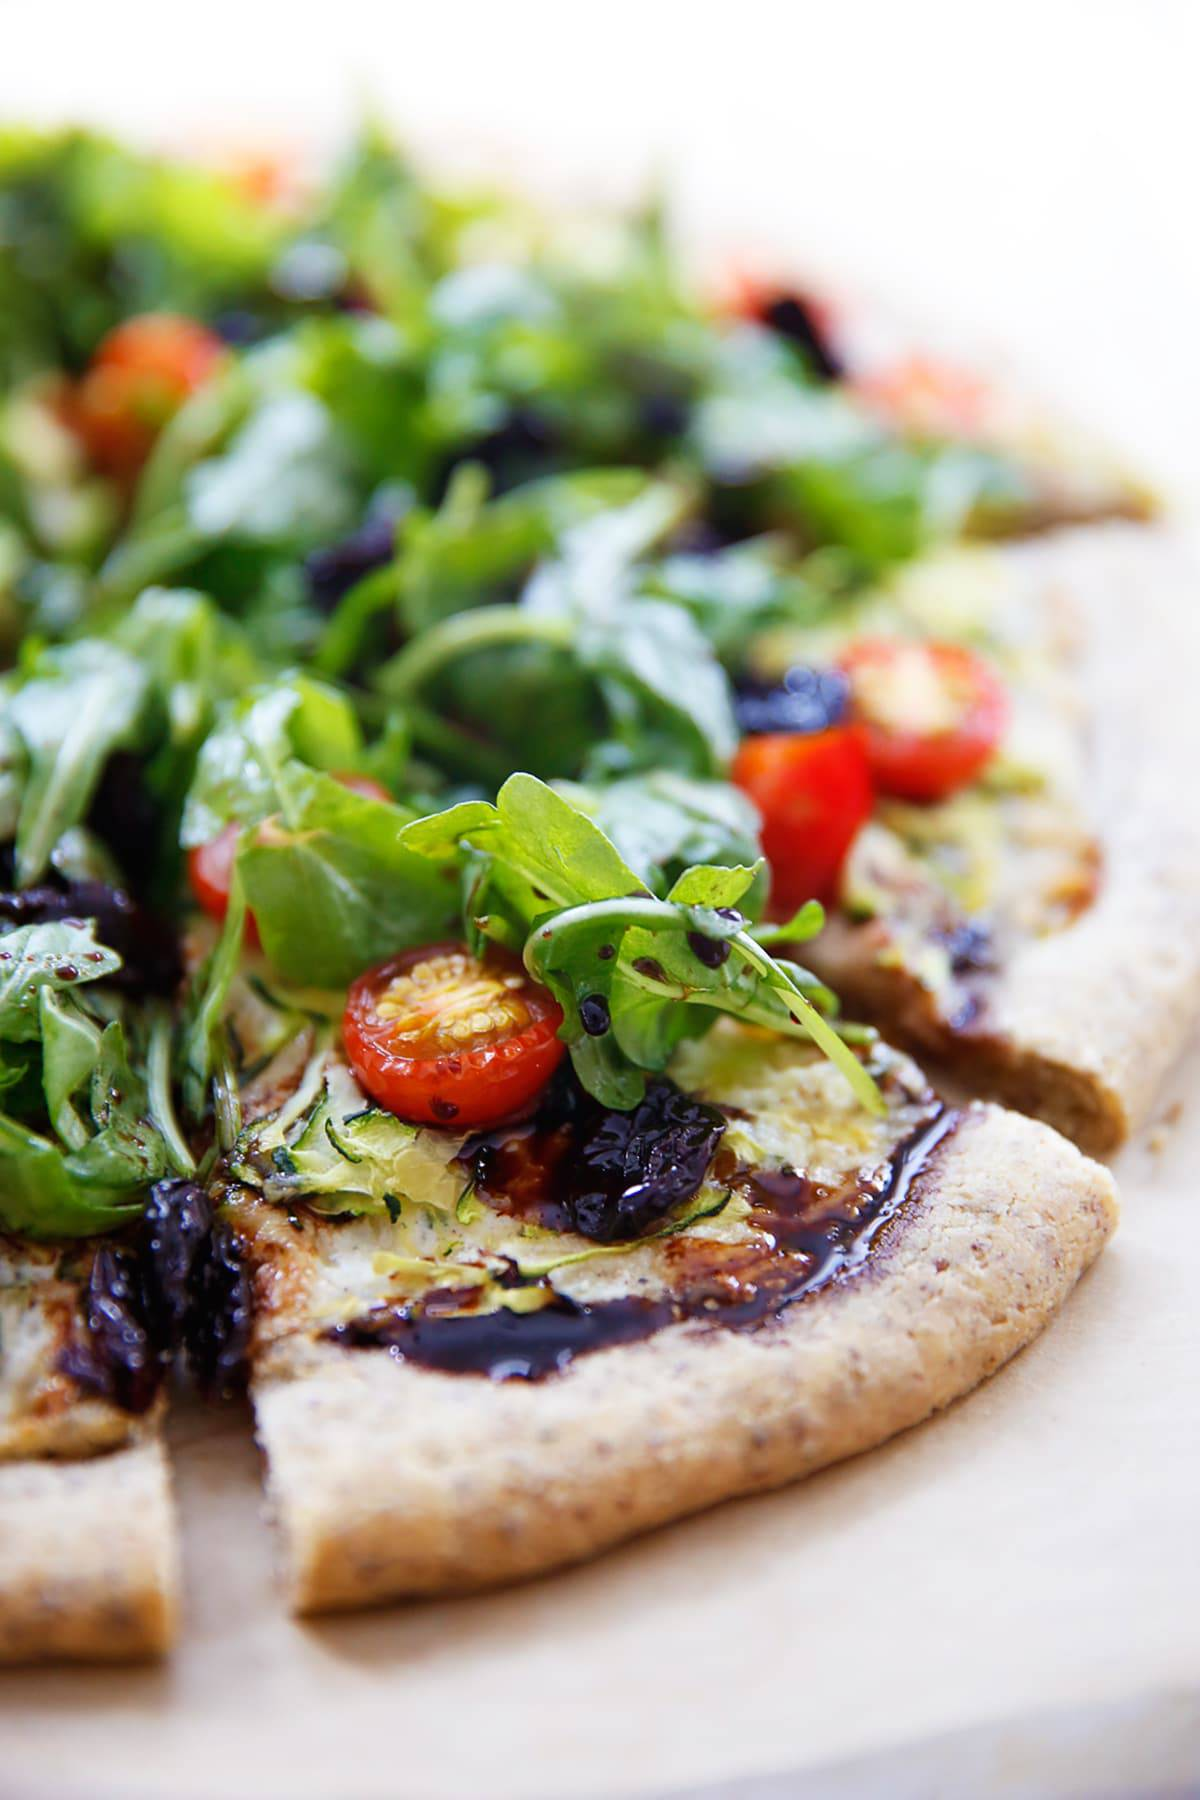 Garden Veggie Pizza with Tart Cherry Balsamic Reduction (Gluten-Free)